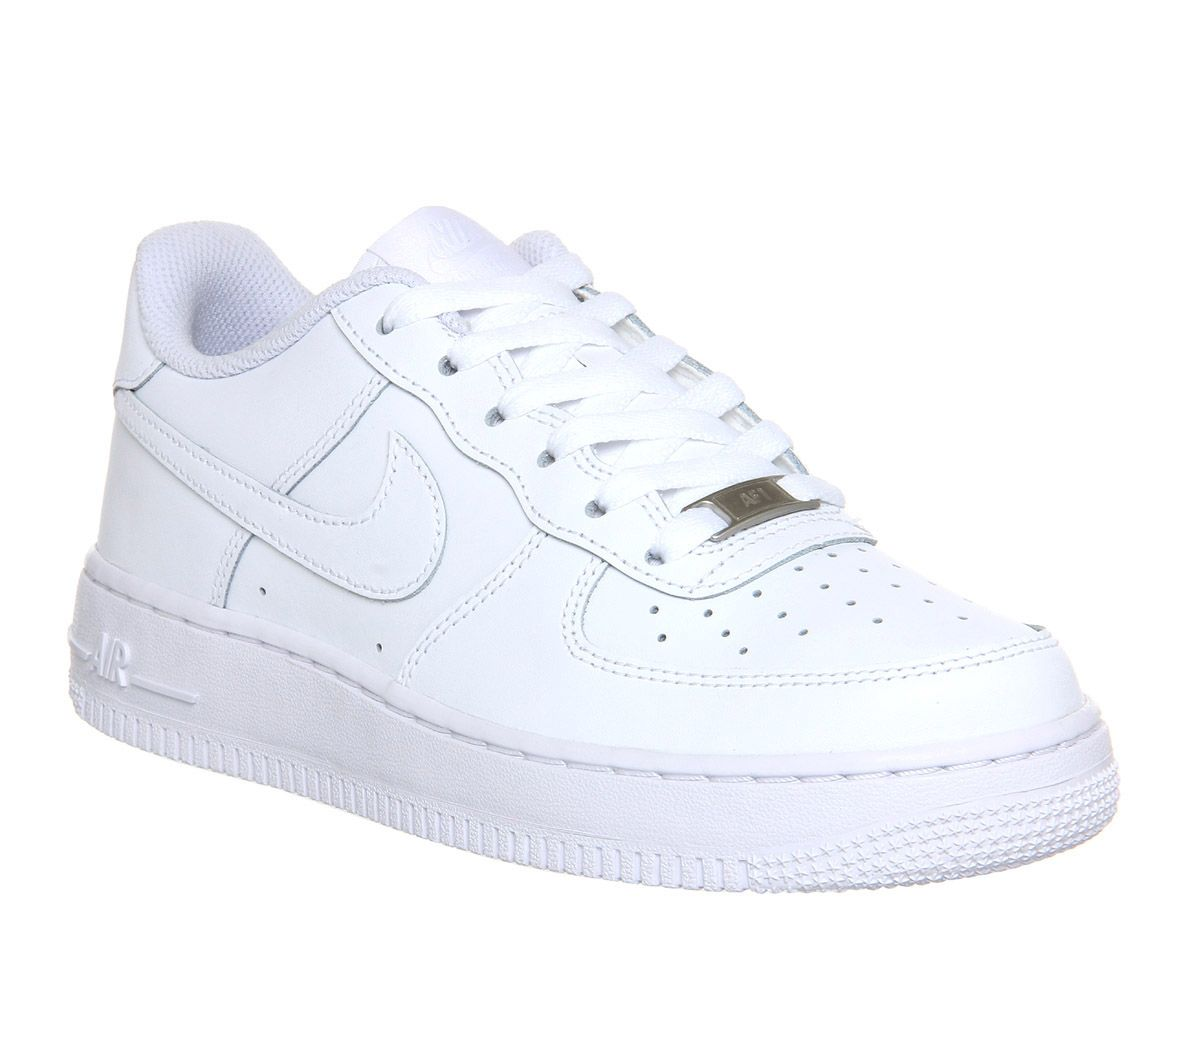 new arrival 32cc5 d751d Nike Air Force 1 Trainers White - Kids Trainers